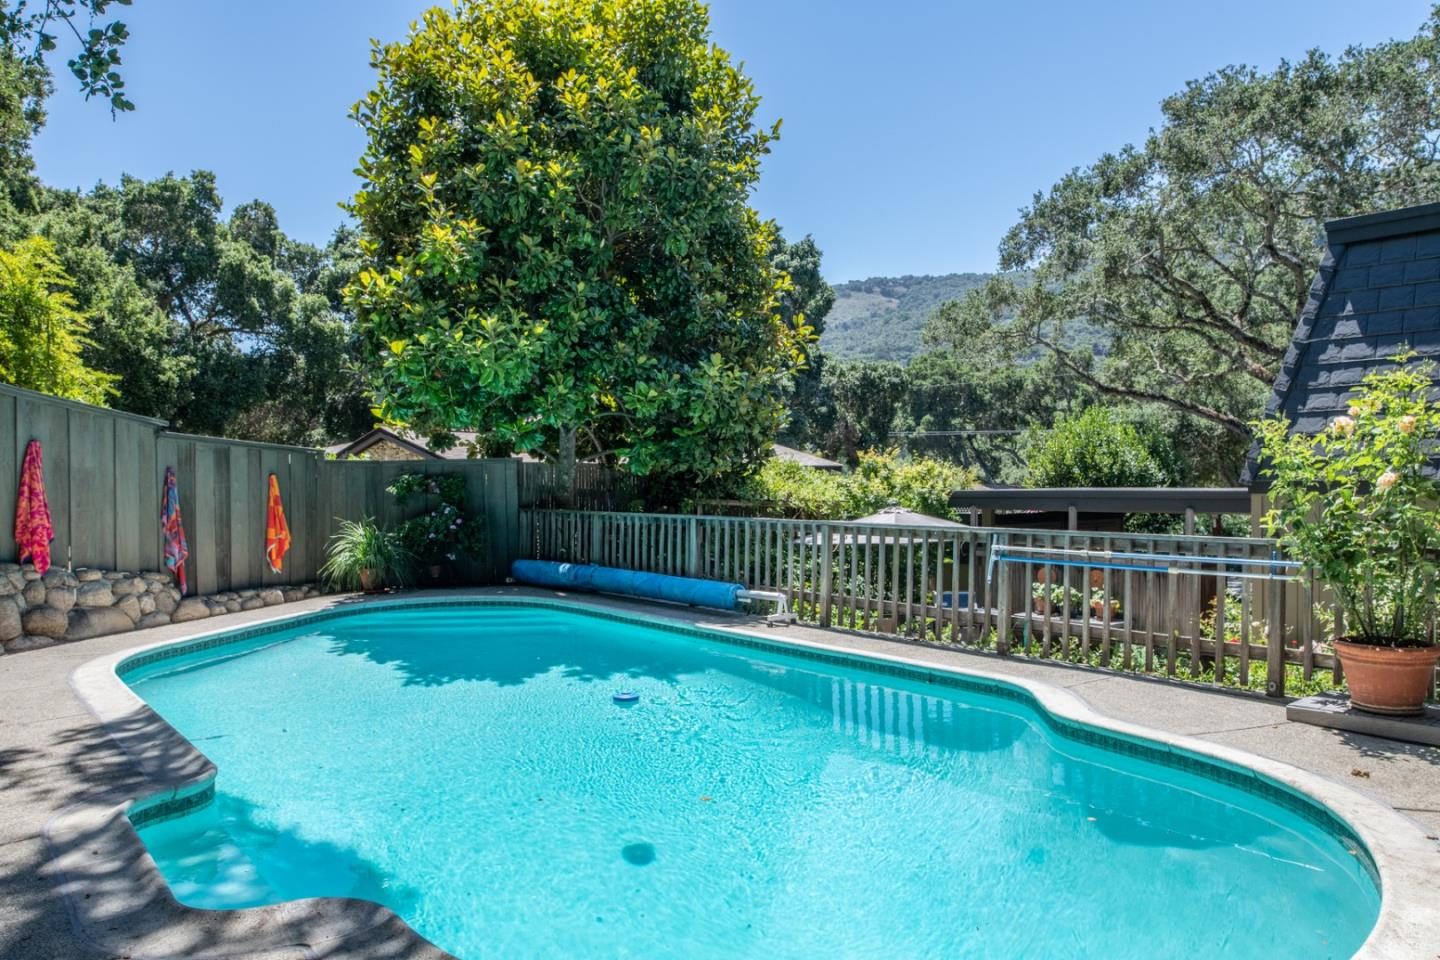 Property for sale at 13 Paso Cresta, Carmel Valley,  California 93924